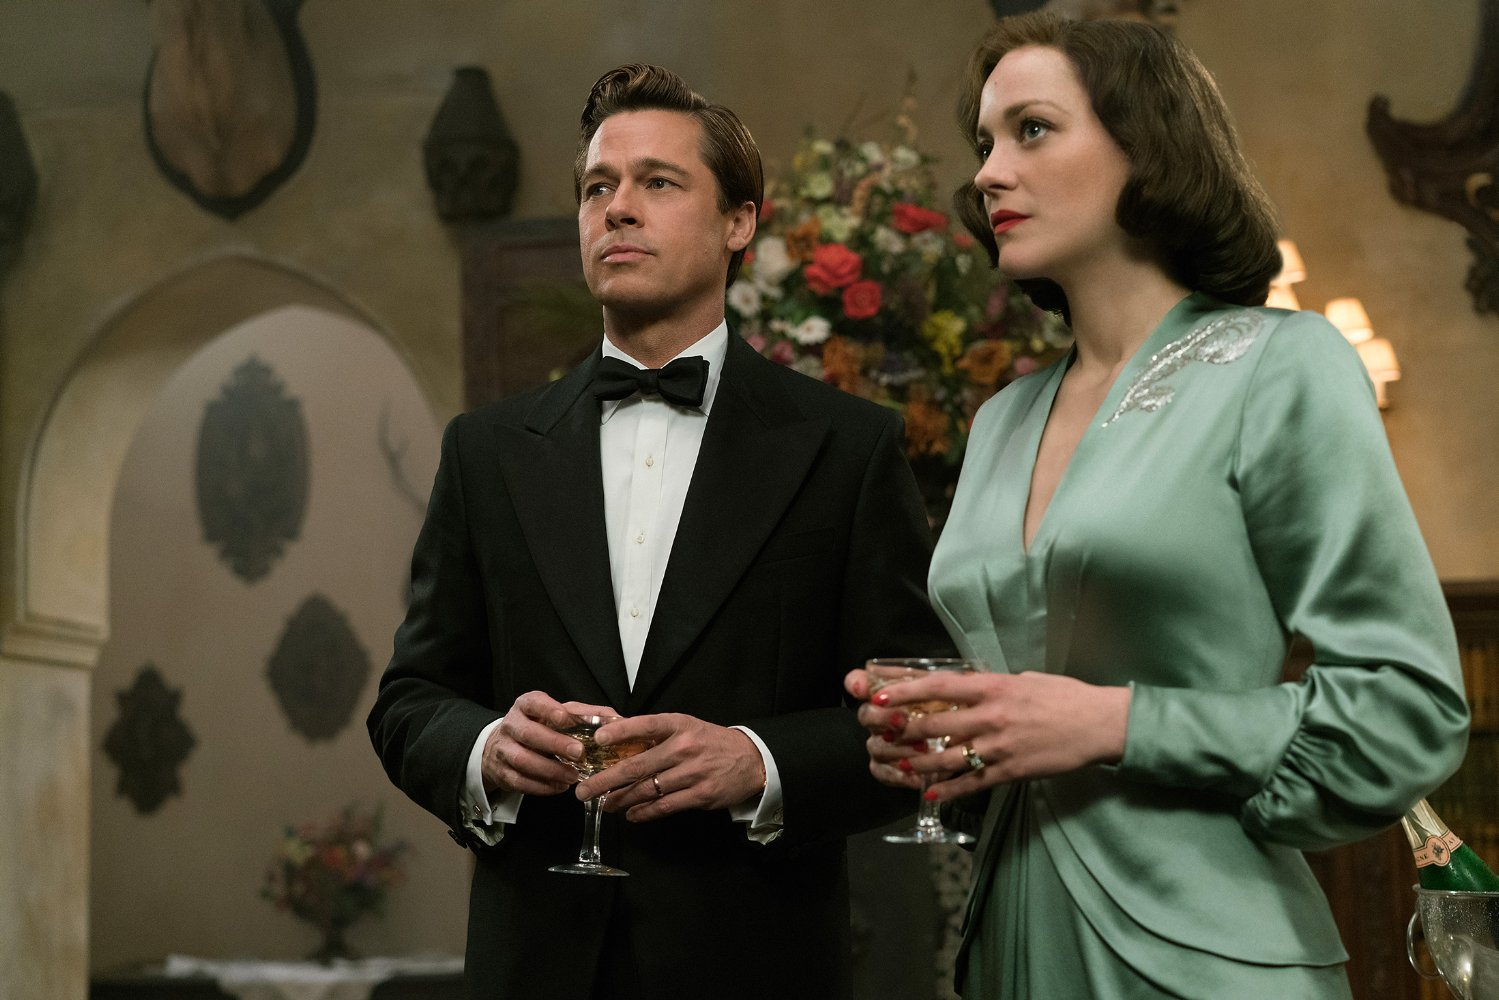 Brad Pitt and Marion Cotillard light up screen in Allied trailer